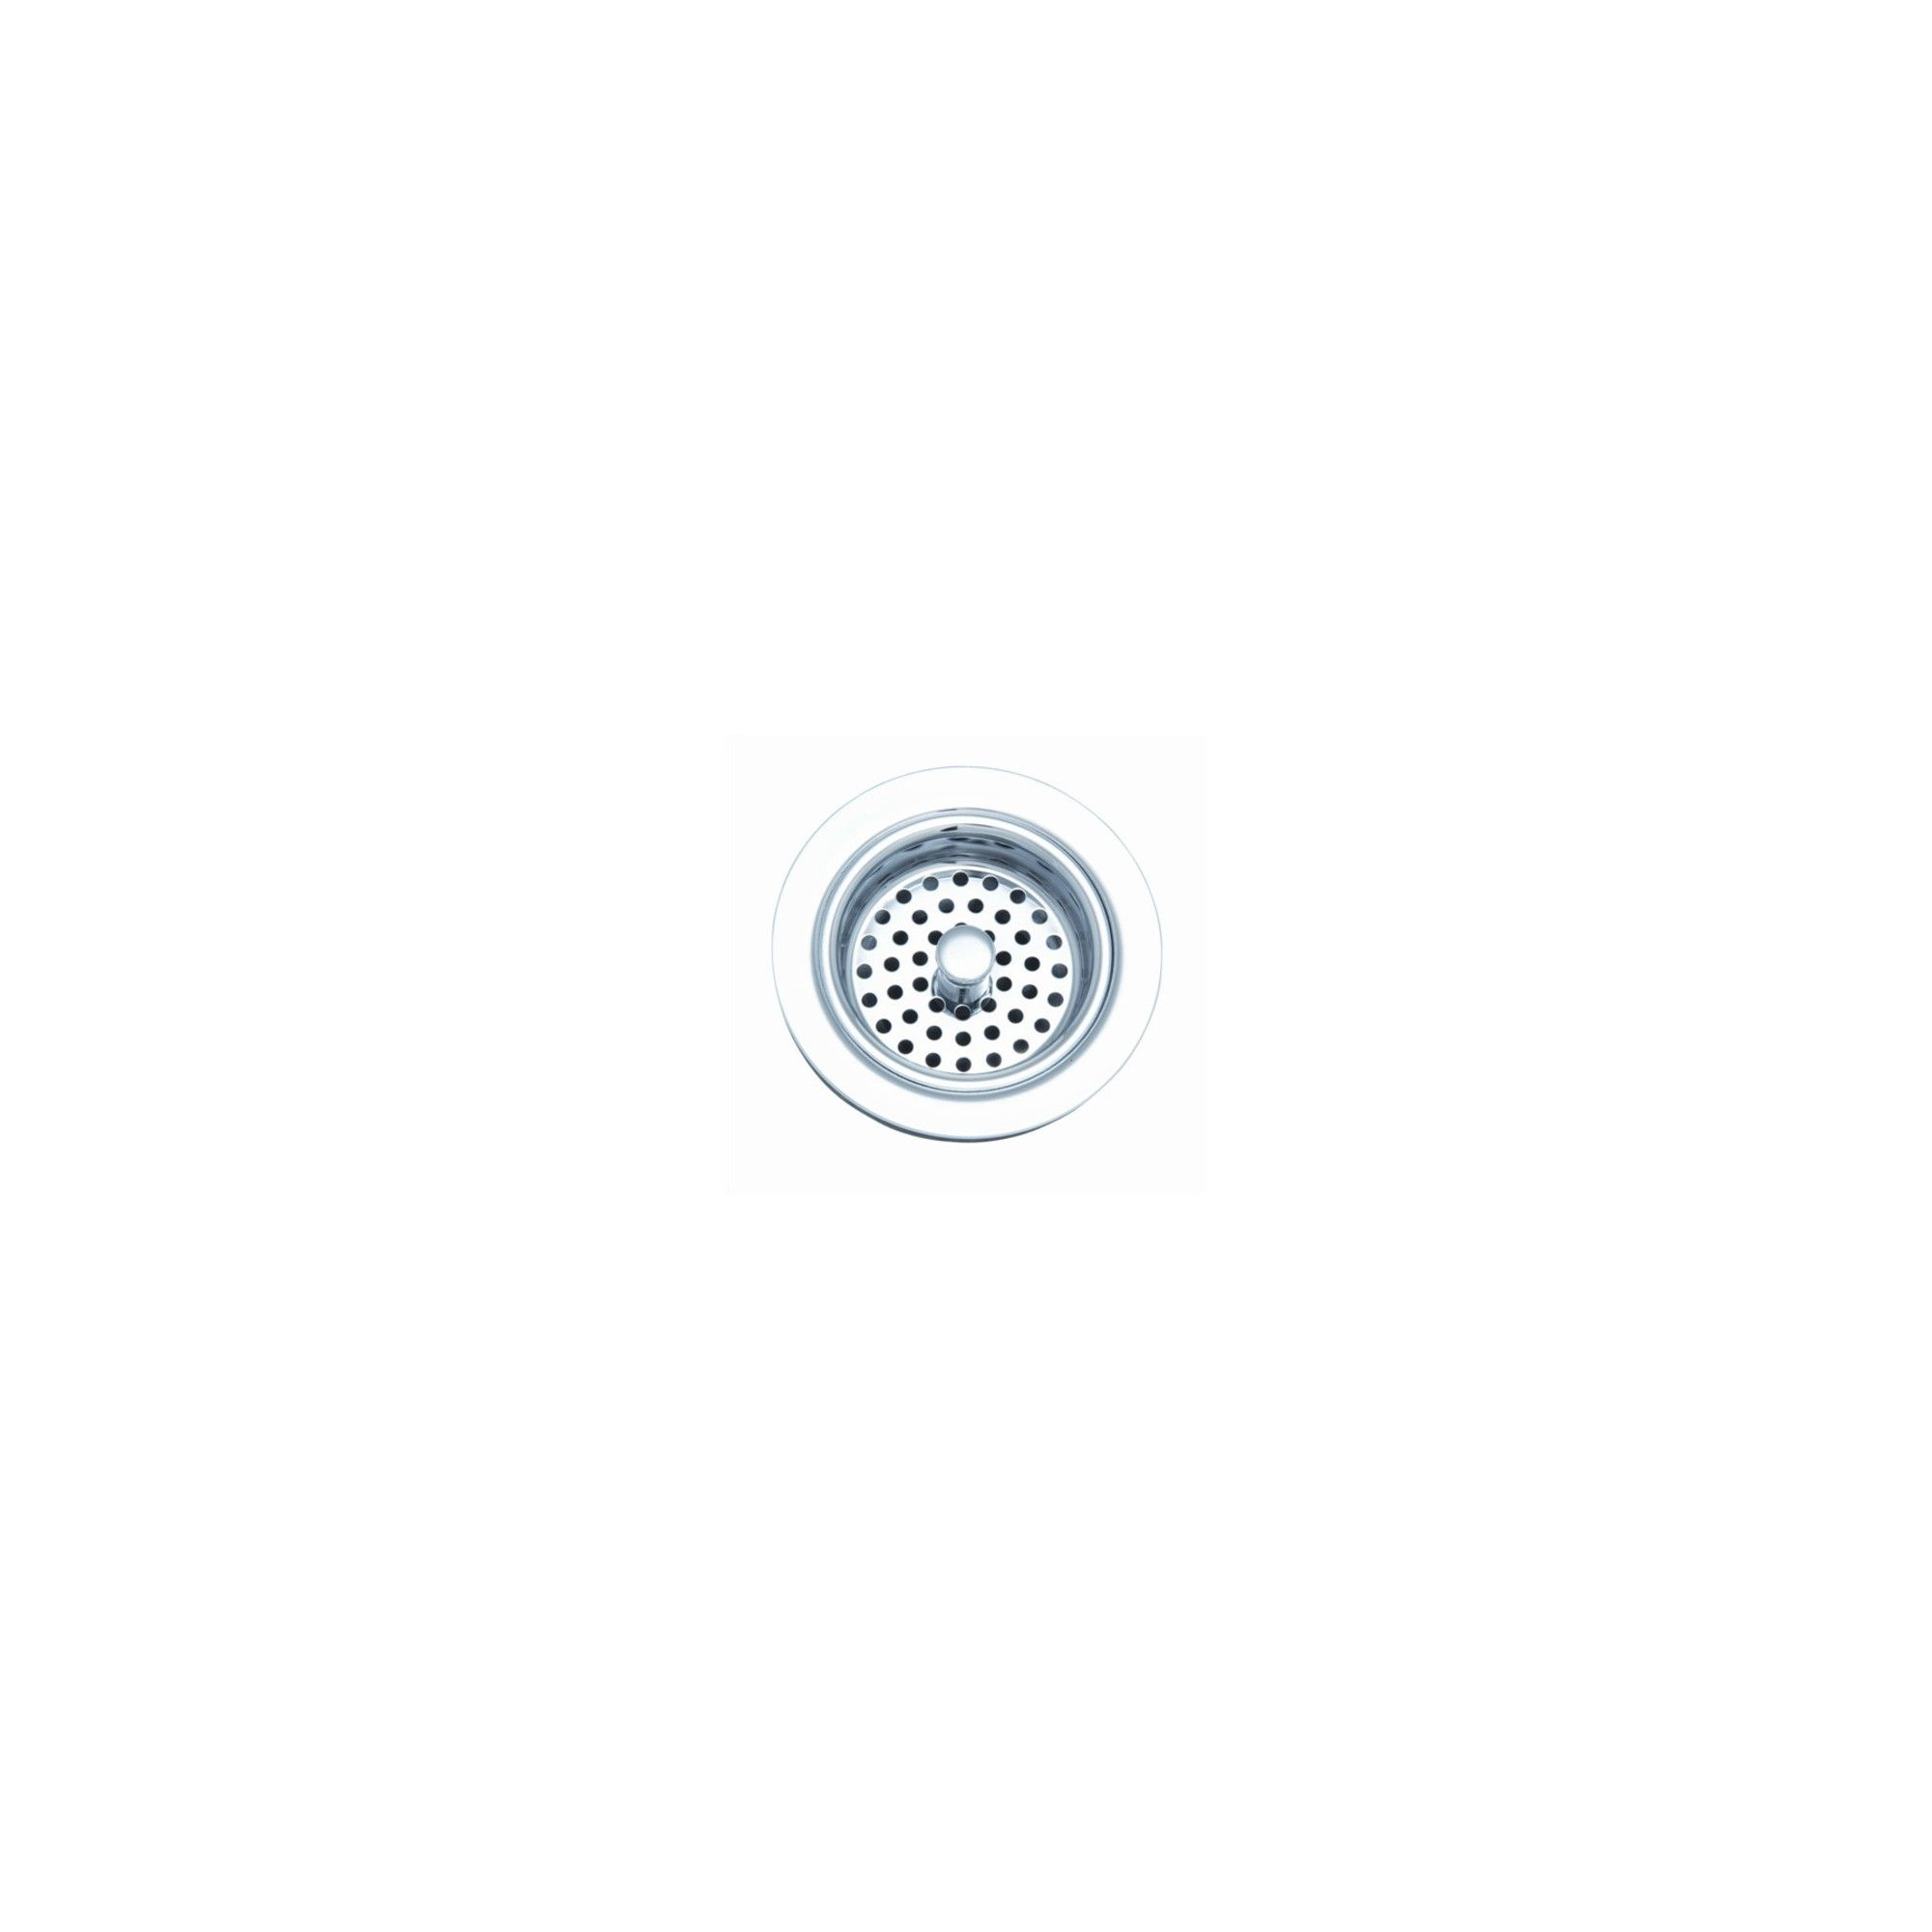 Proflo Pf151 Kitchen Sink Drain Assembly And Basket Strainer